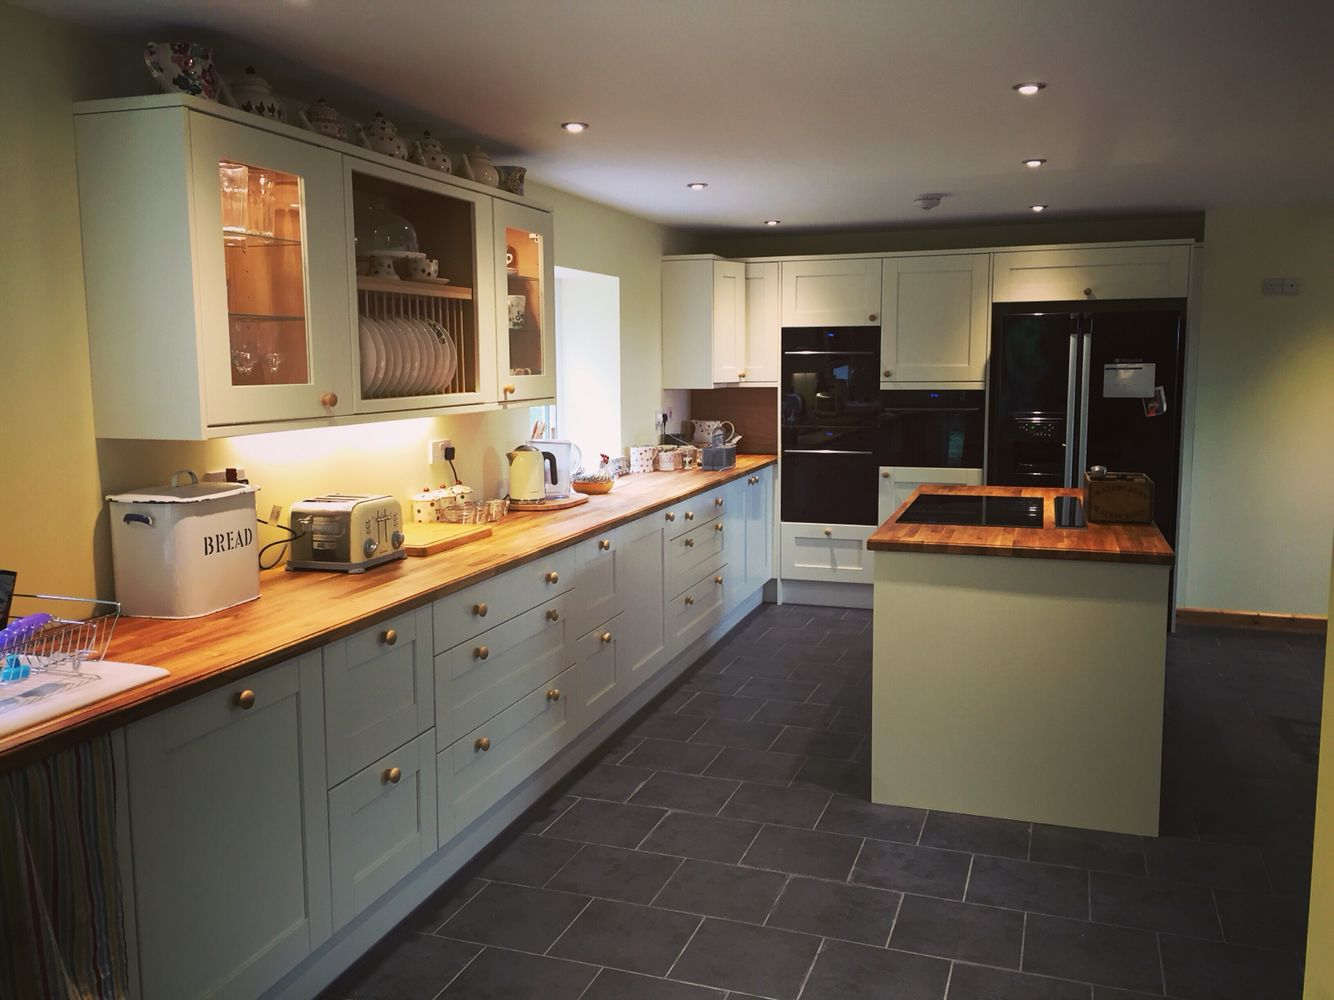 Cottage kitchen in our new extension, Tewkesbury by